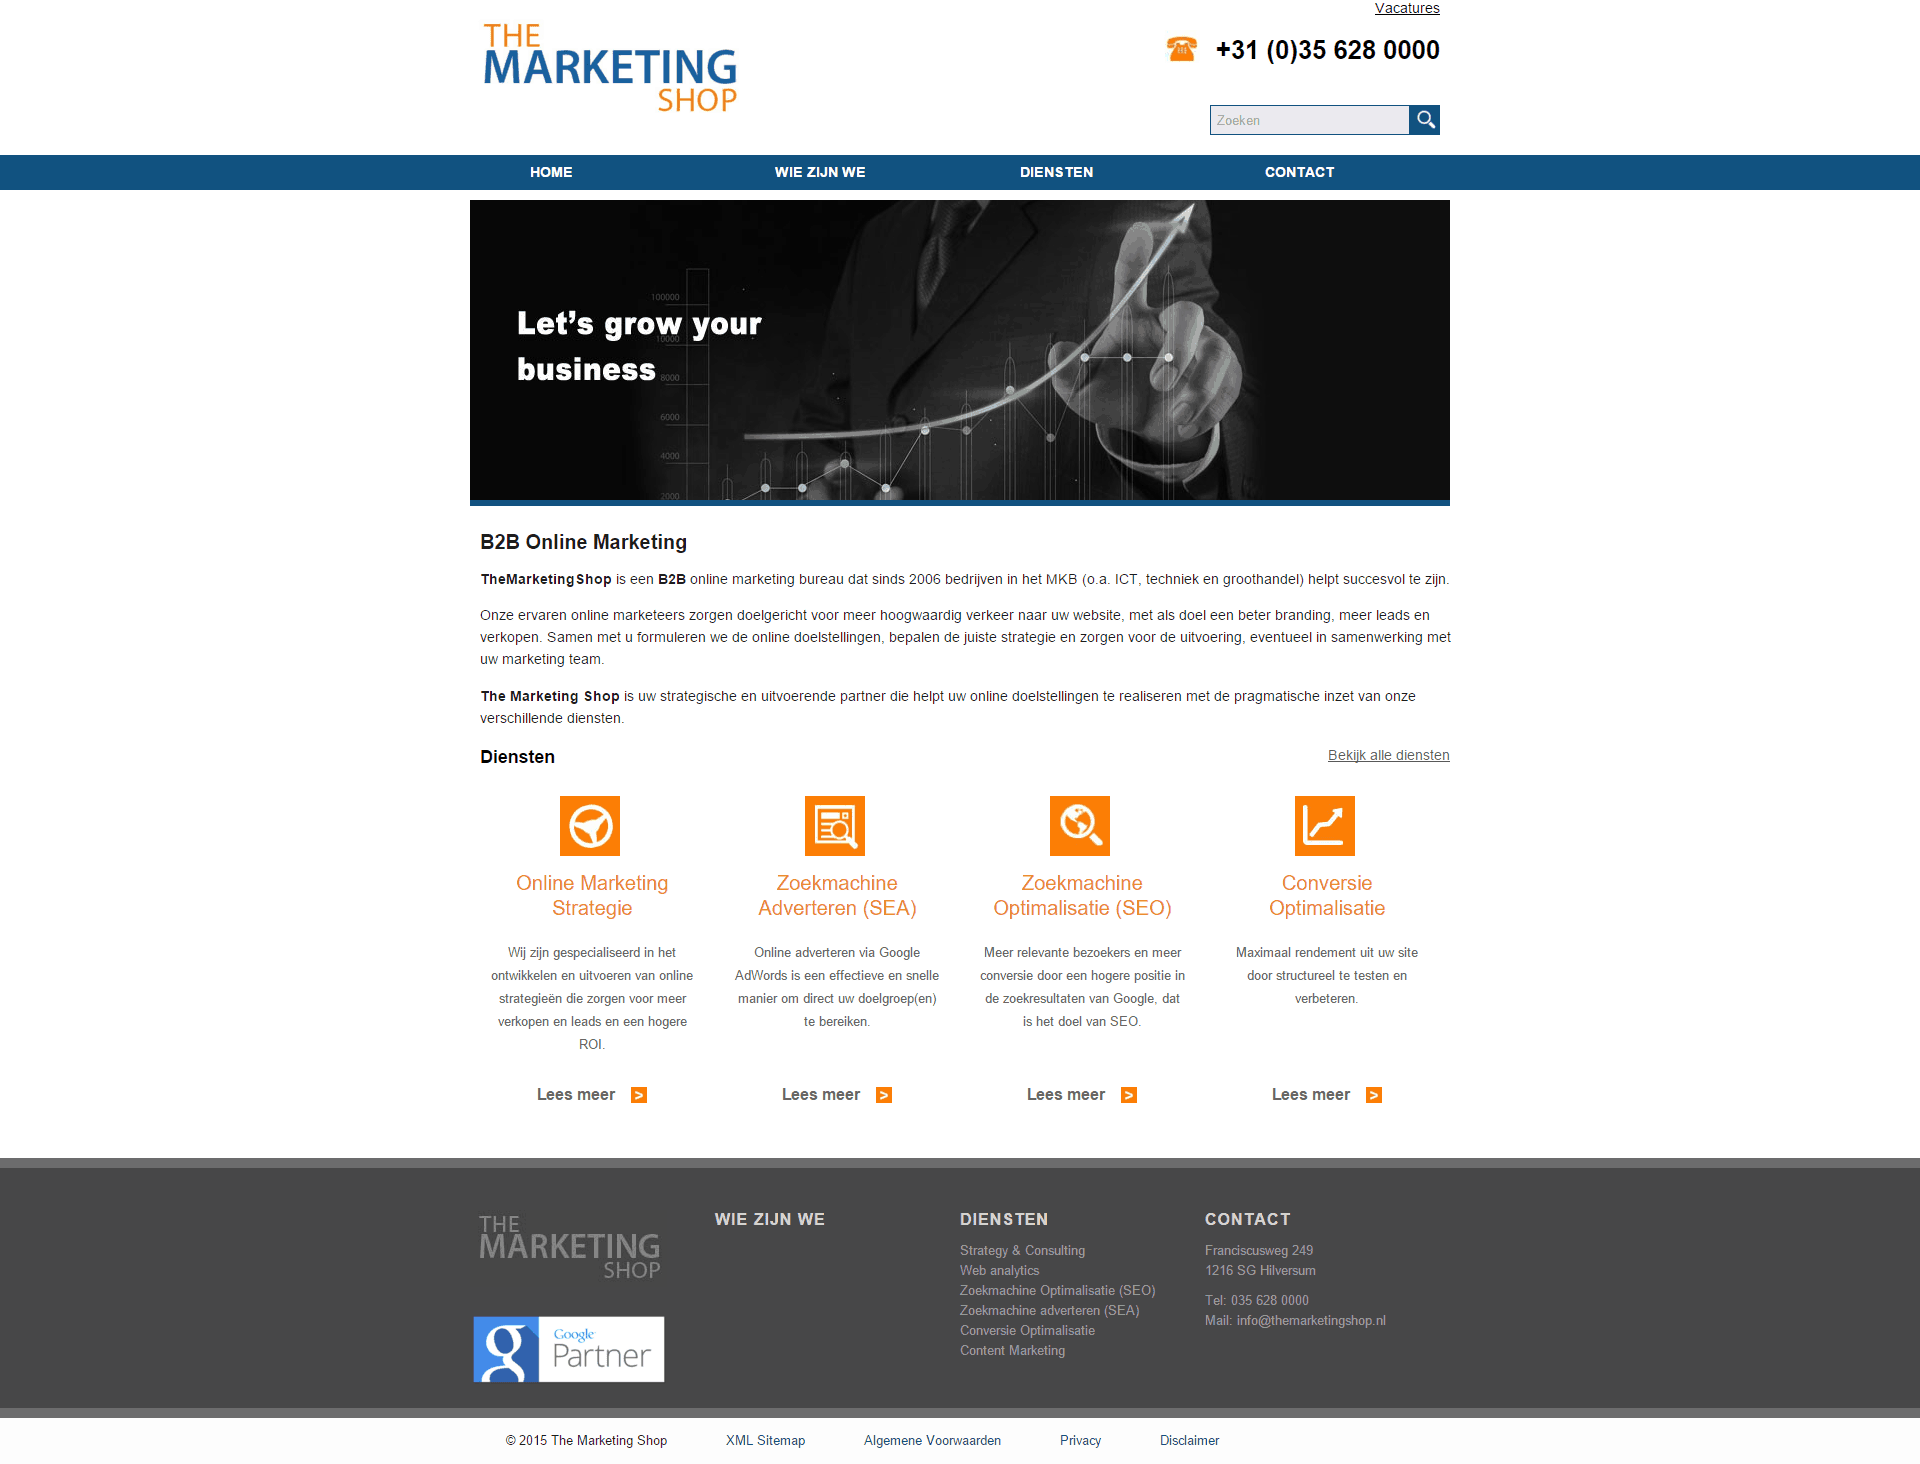 TheMarketingShop